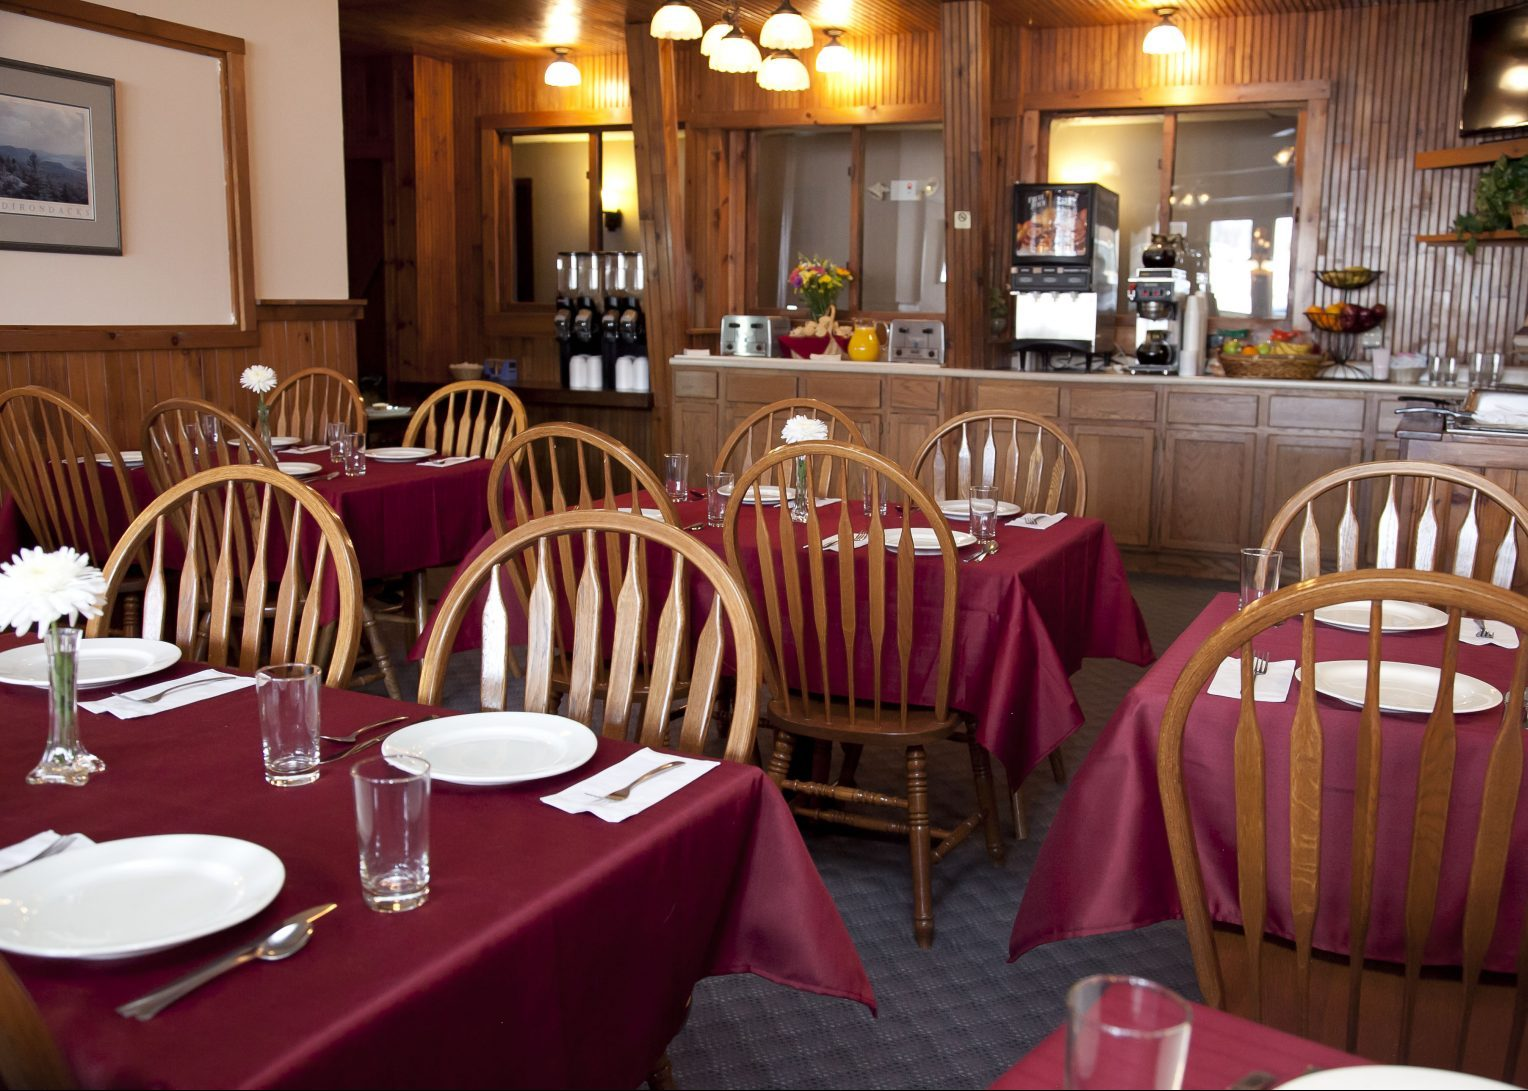 A restaurant with maroon table cloths a centerpiece of a large white flower, wooden chairs and place settings set at each table